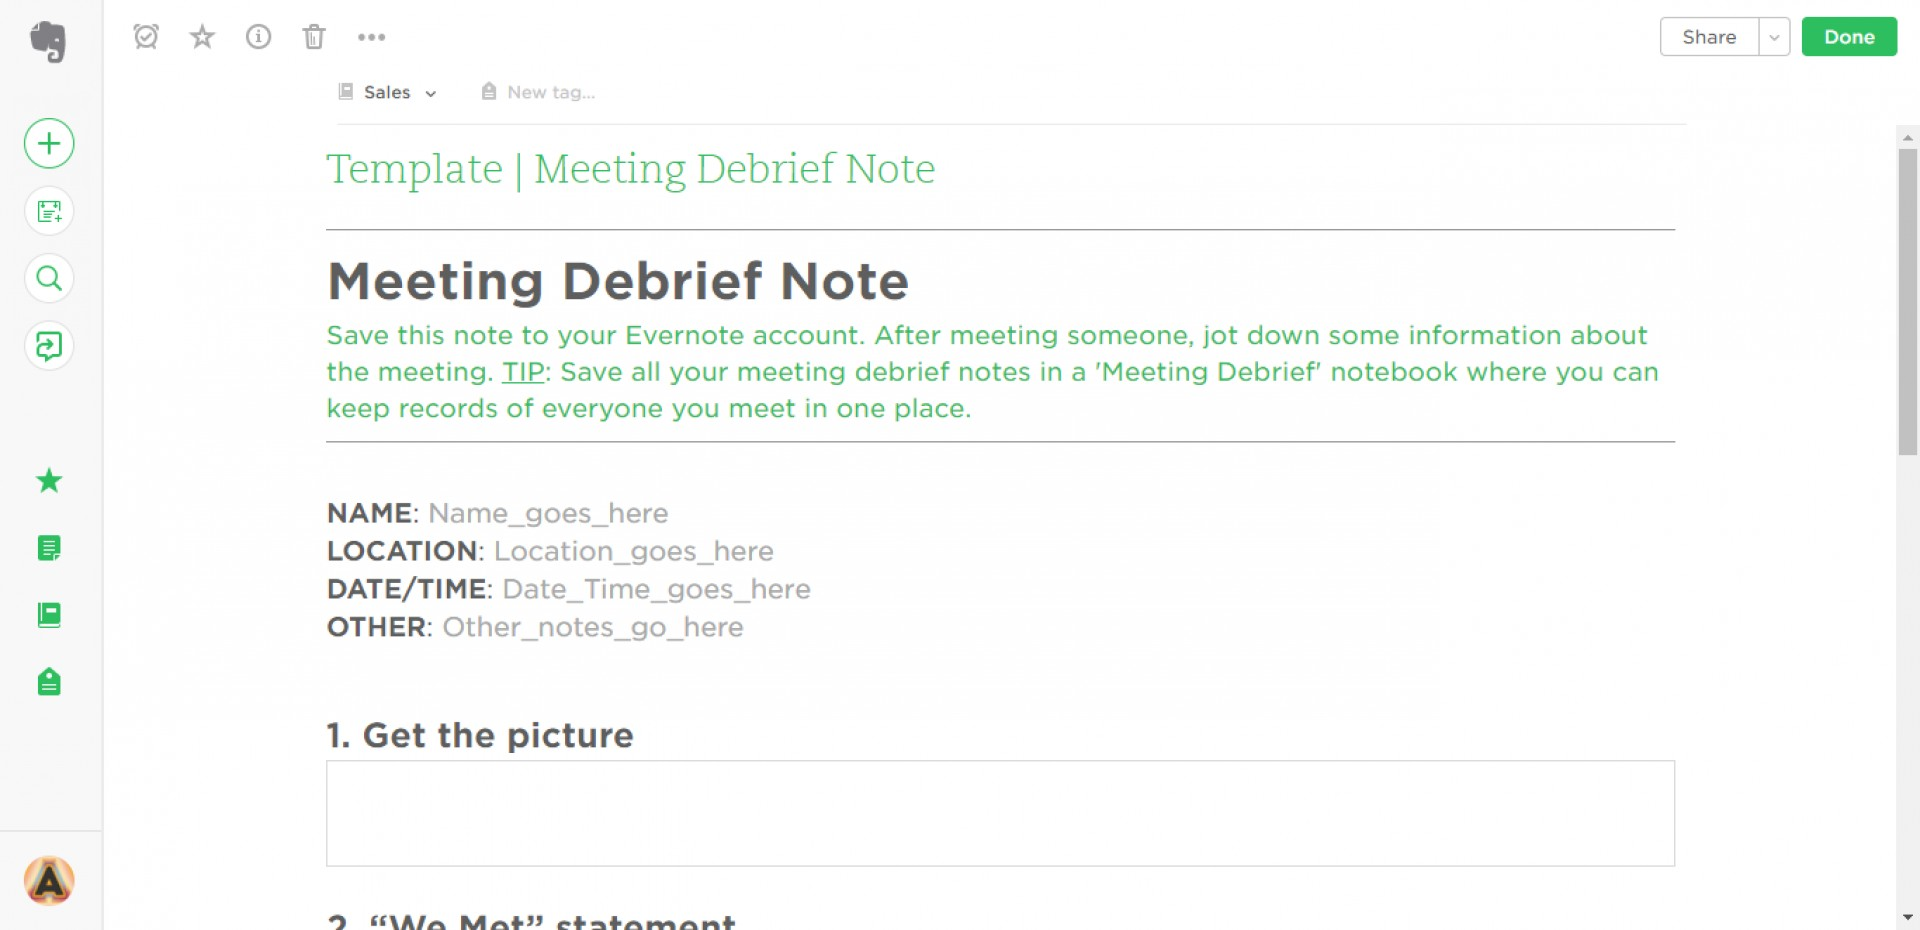 024 Meeting Debrief Evernote Templates Note Cards Template For Research Astounding Paper Example Of Notecards 1920